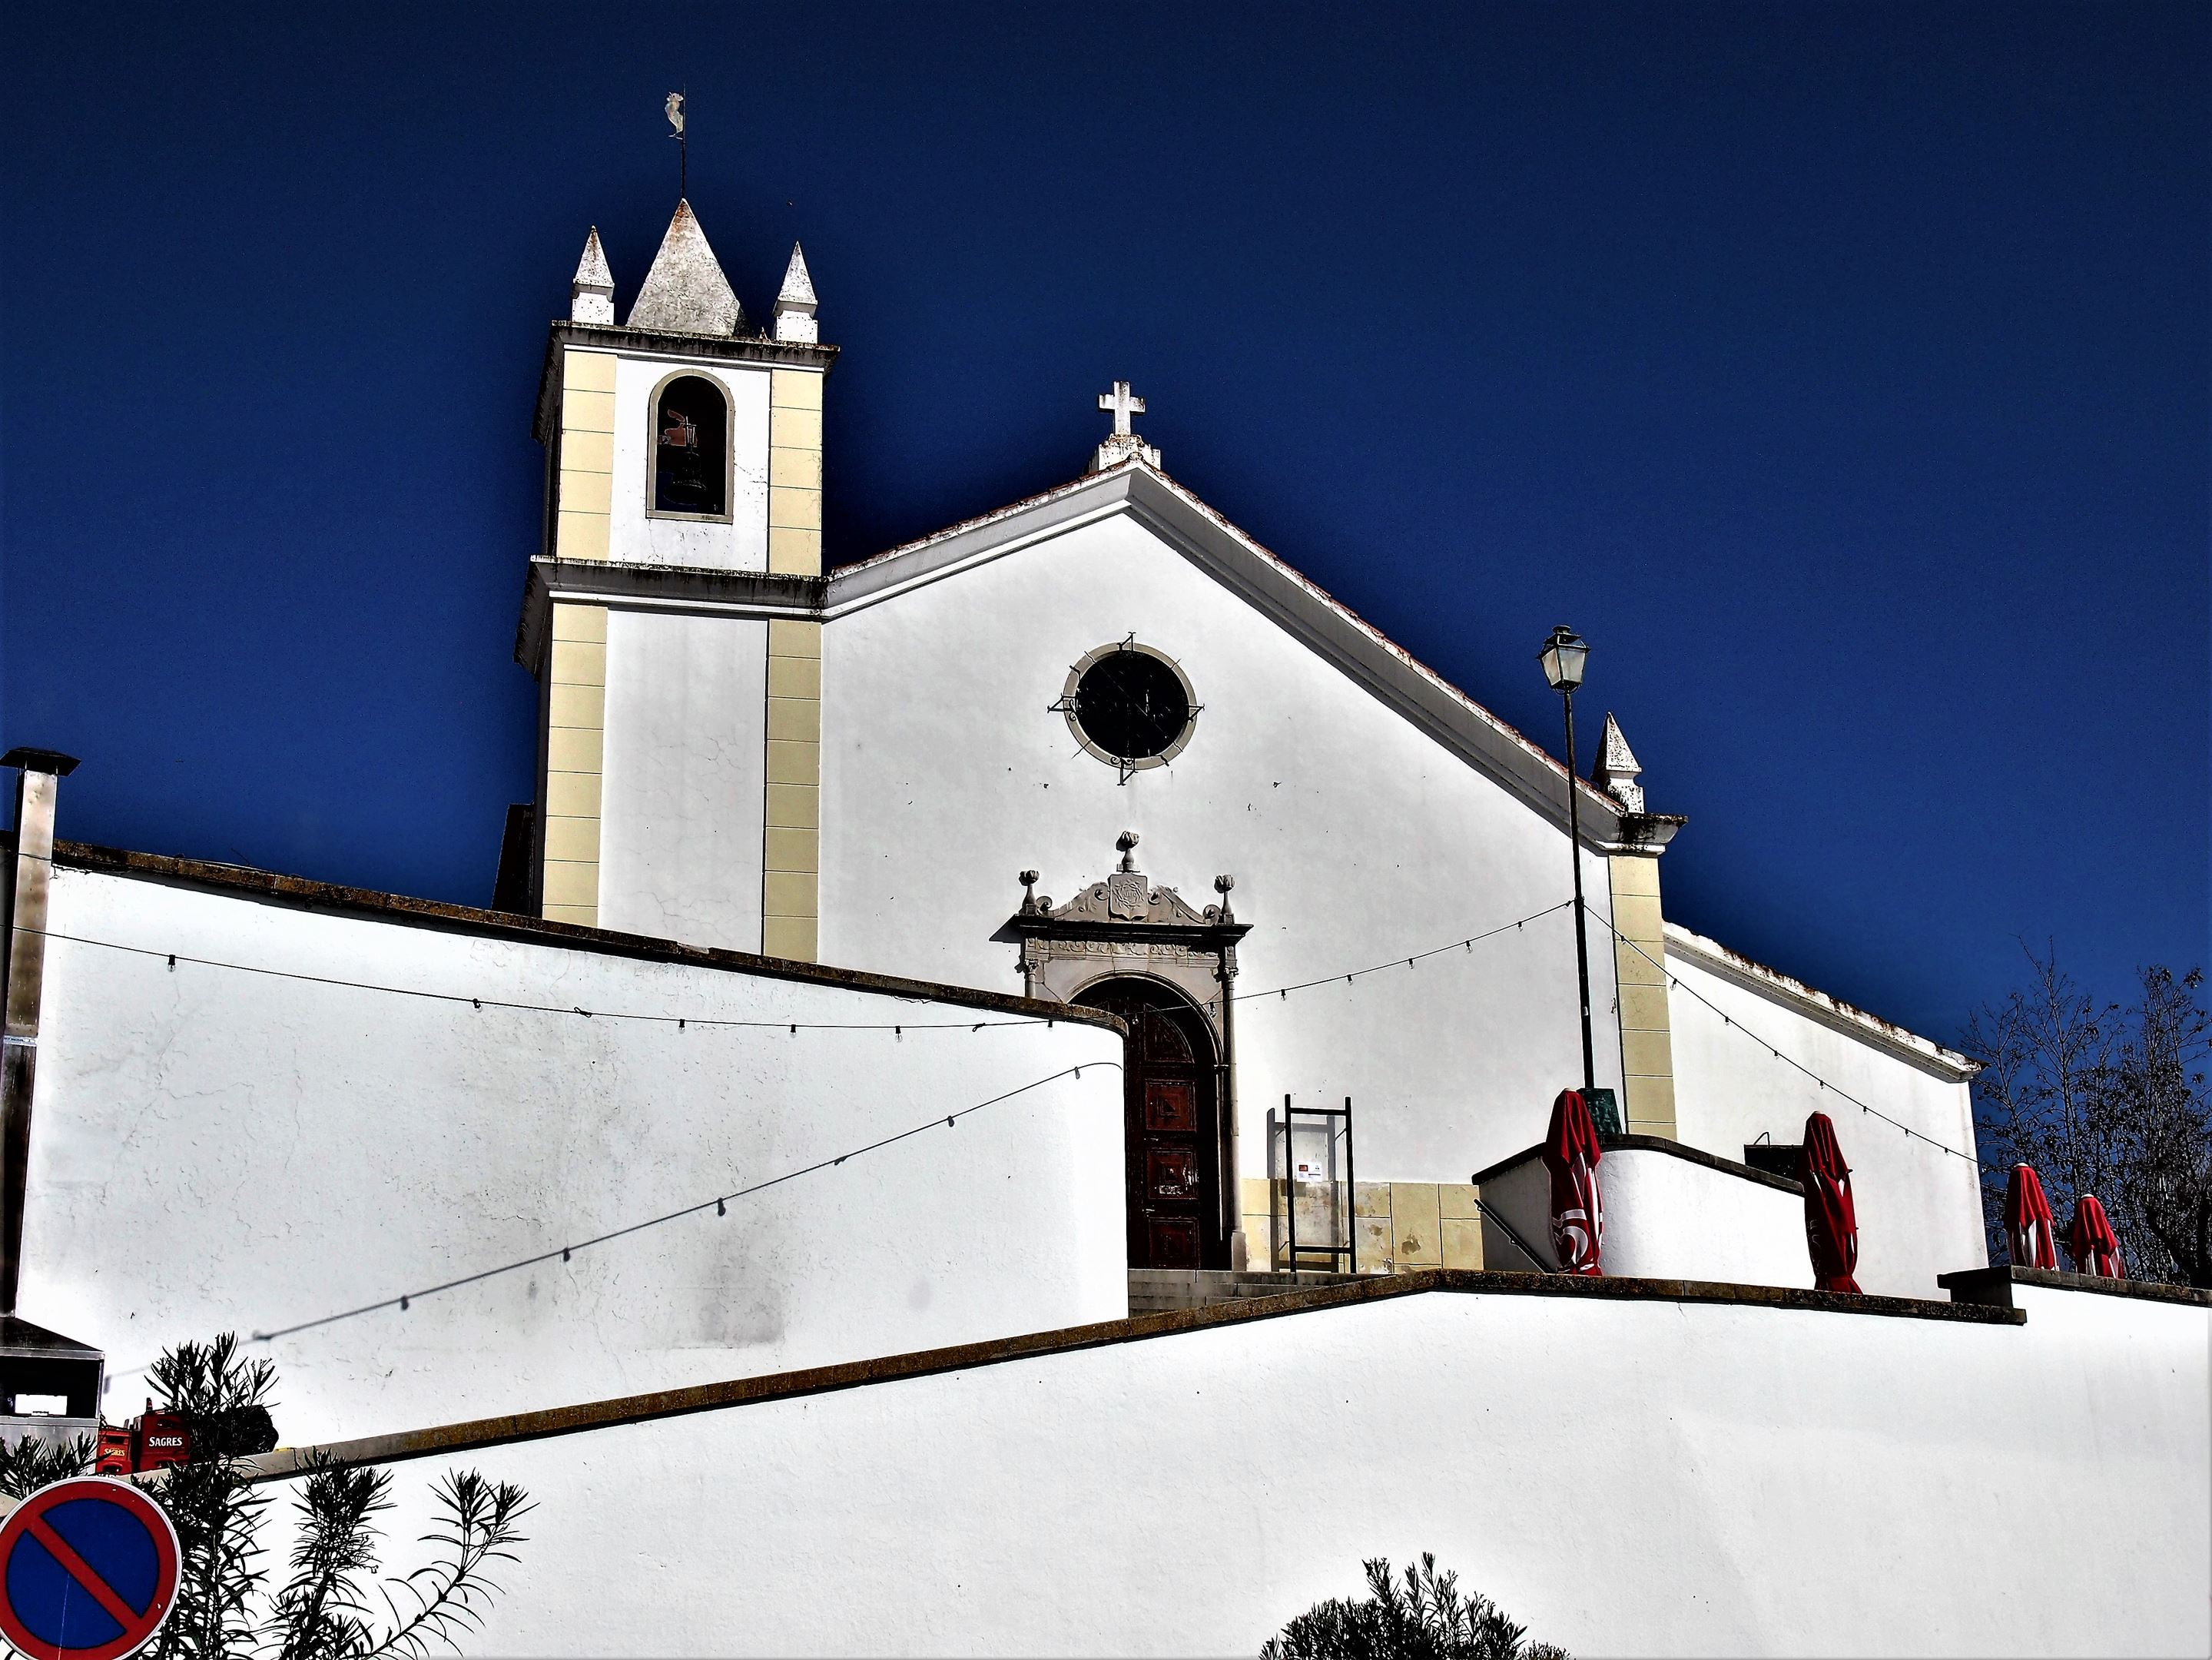 The Igreja Matriz (Mother Church), Alcoutim